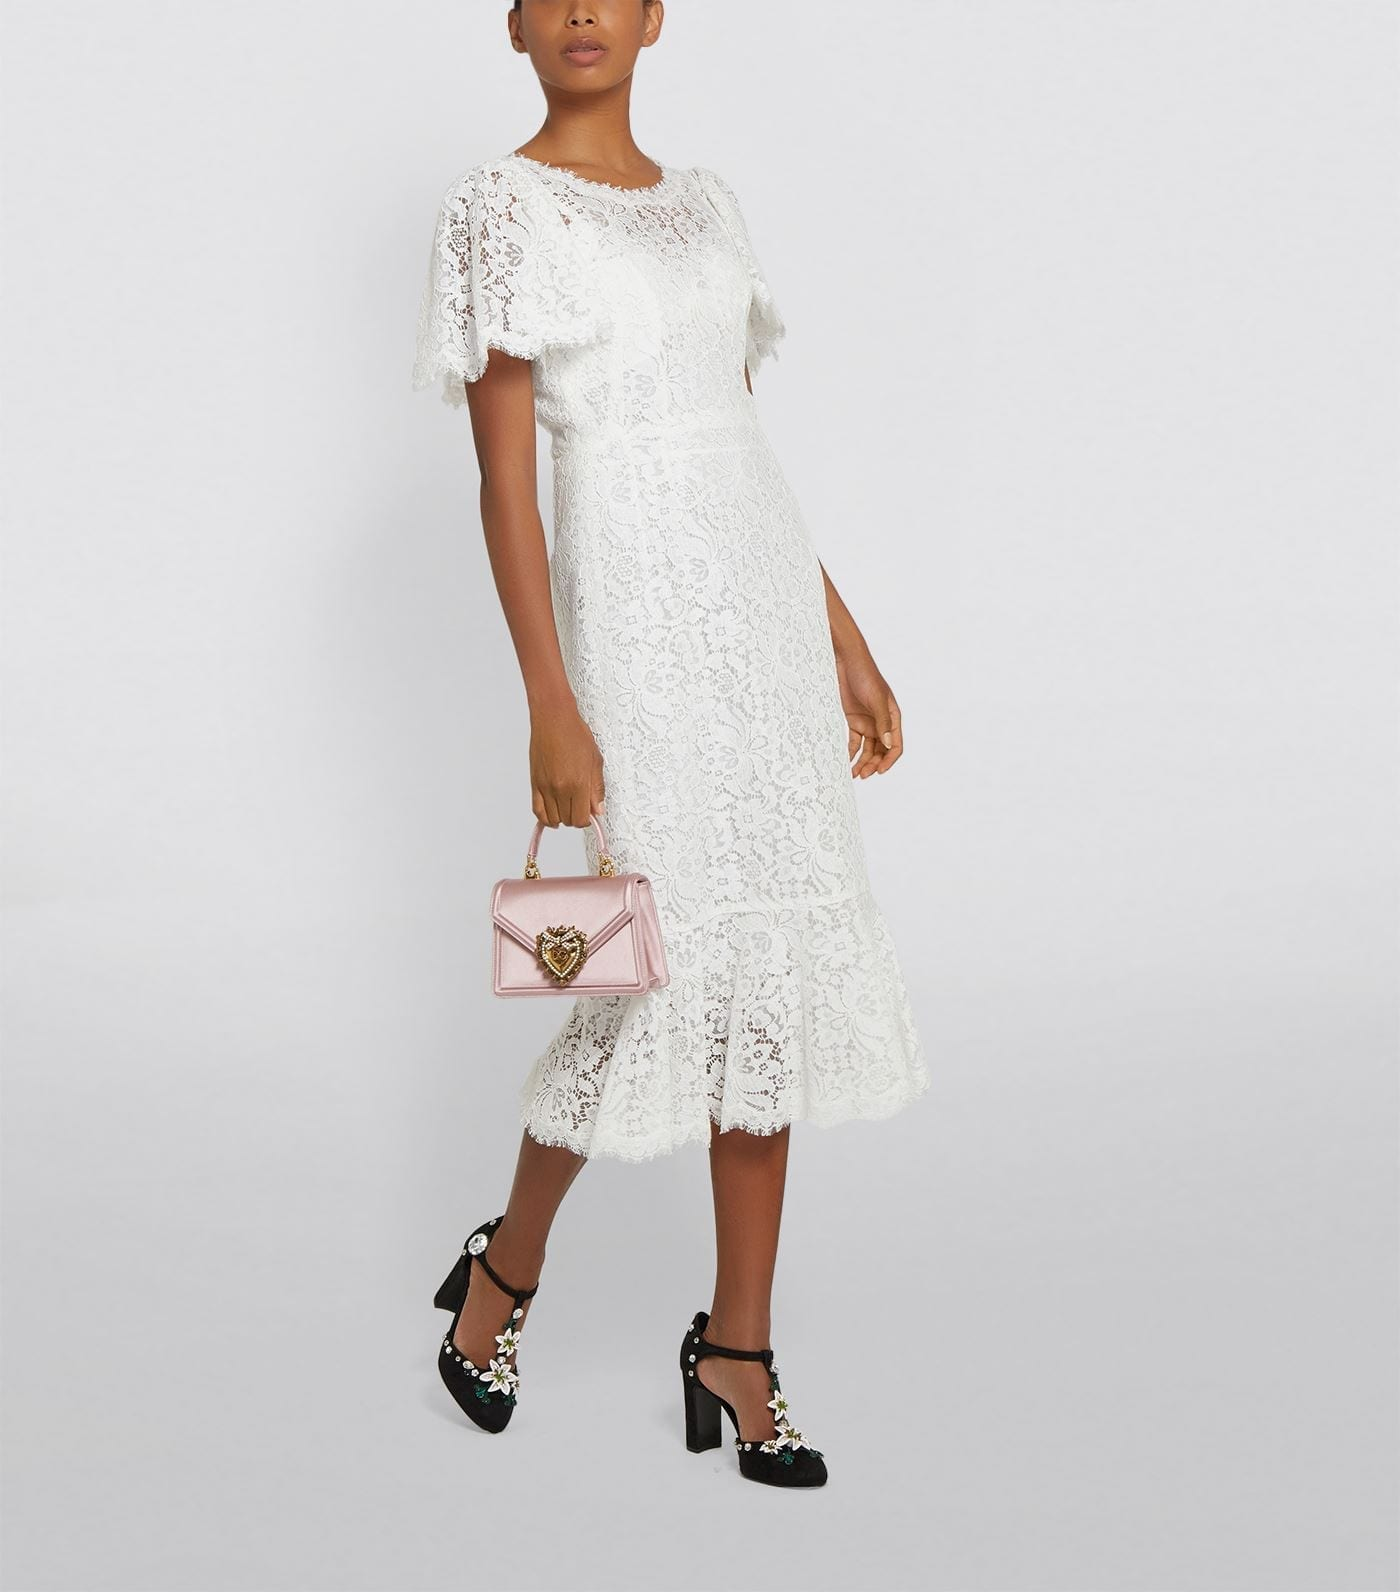 DOLCE & GABBANA Lace Fishtail Dress